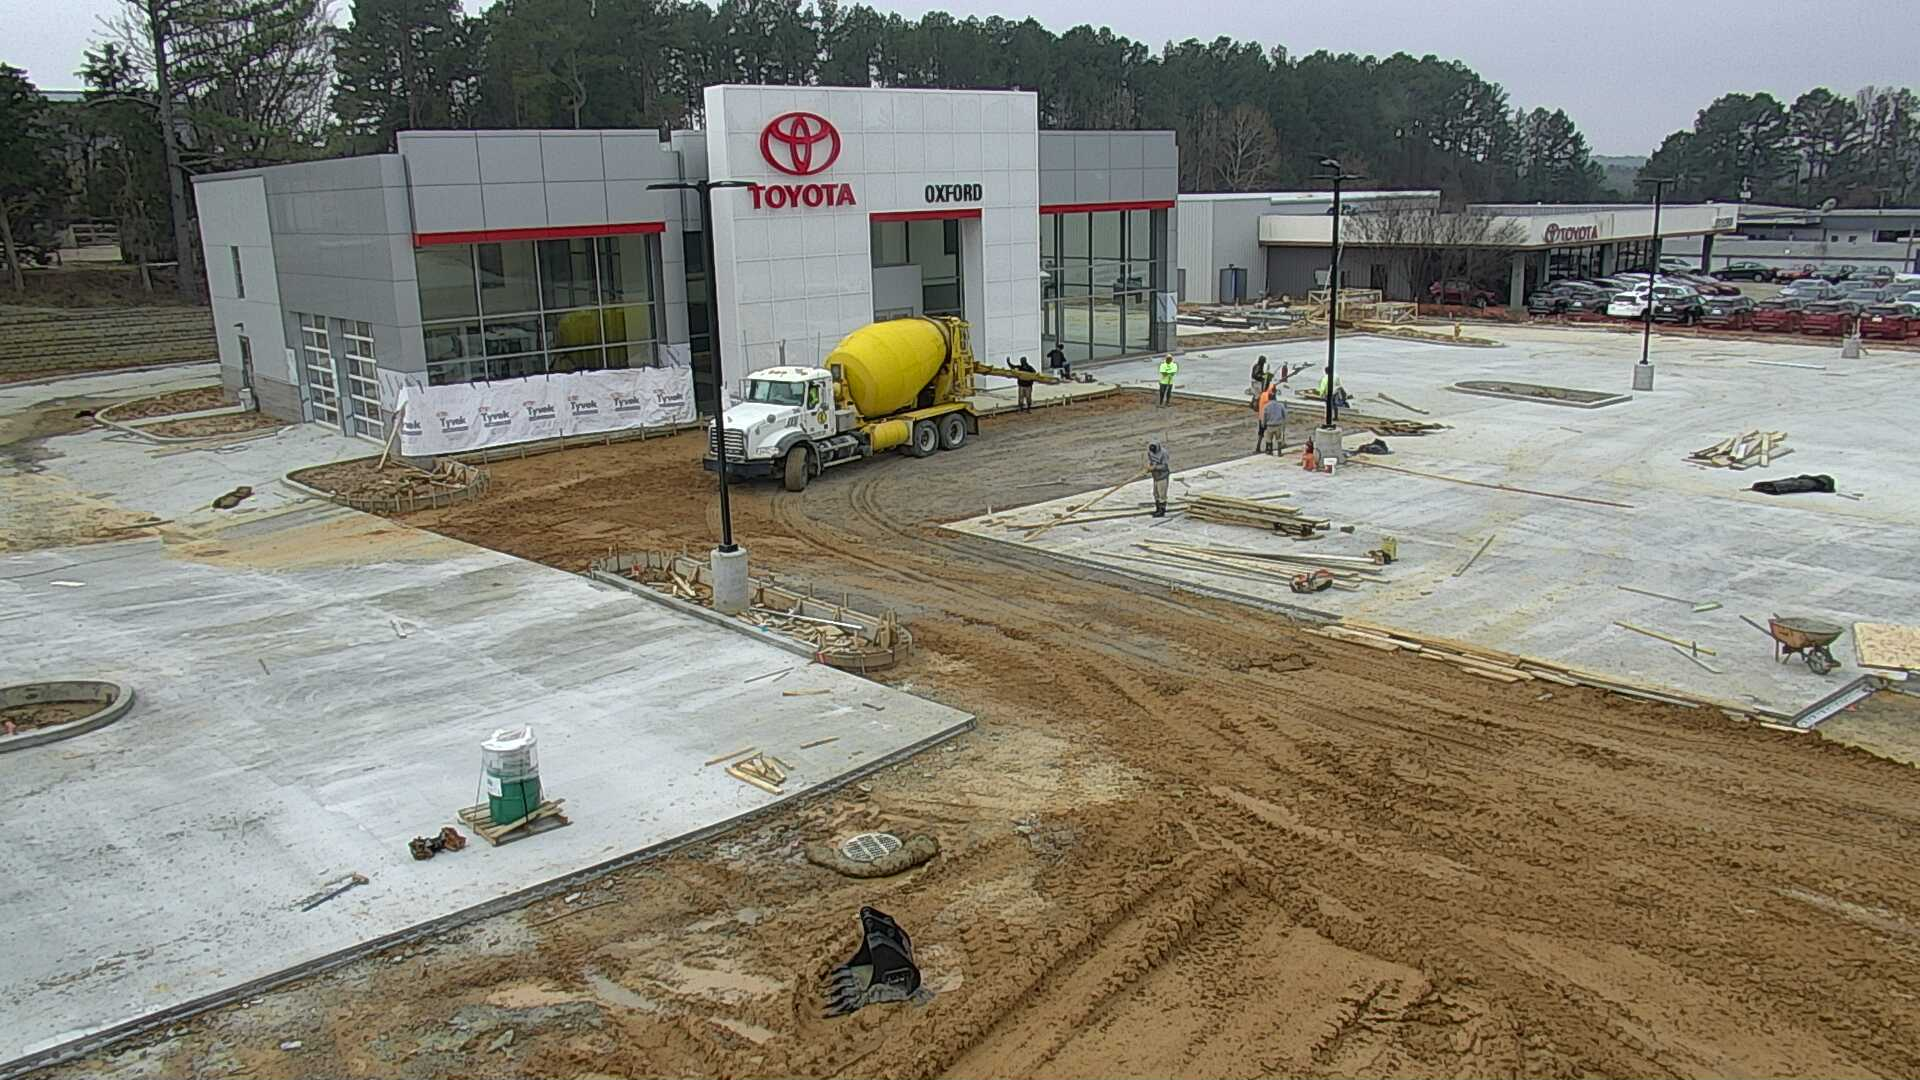 Metro_Construction-Oxford-Oxford_Toyota-February_13_2018_10_10_35_AM.jpg